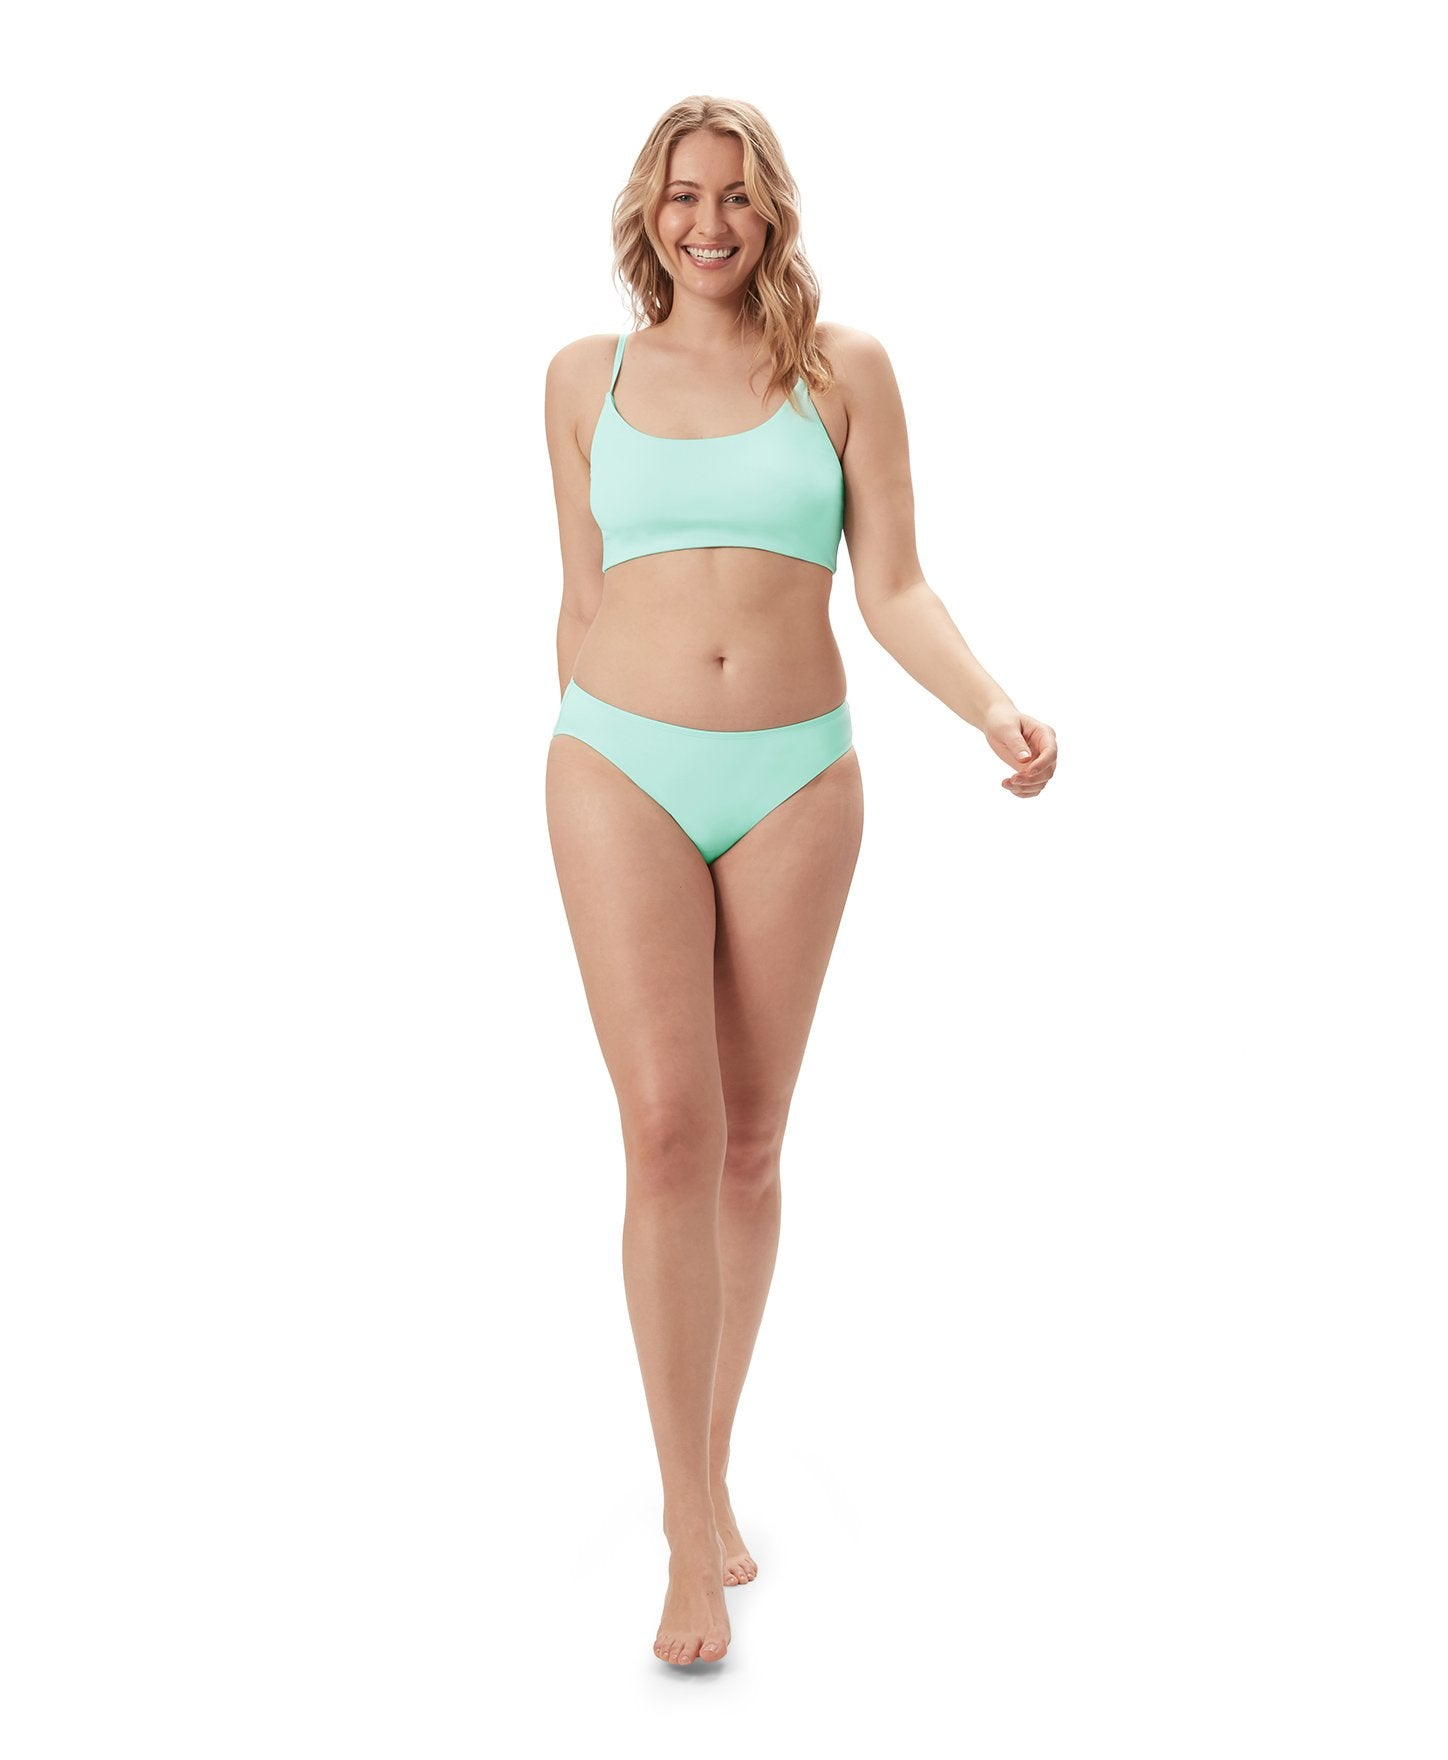 The Maui Top - Flat - Aqua - Final Sale